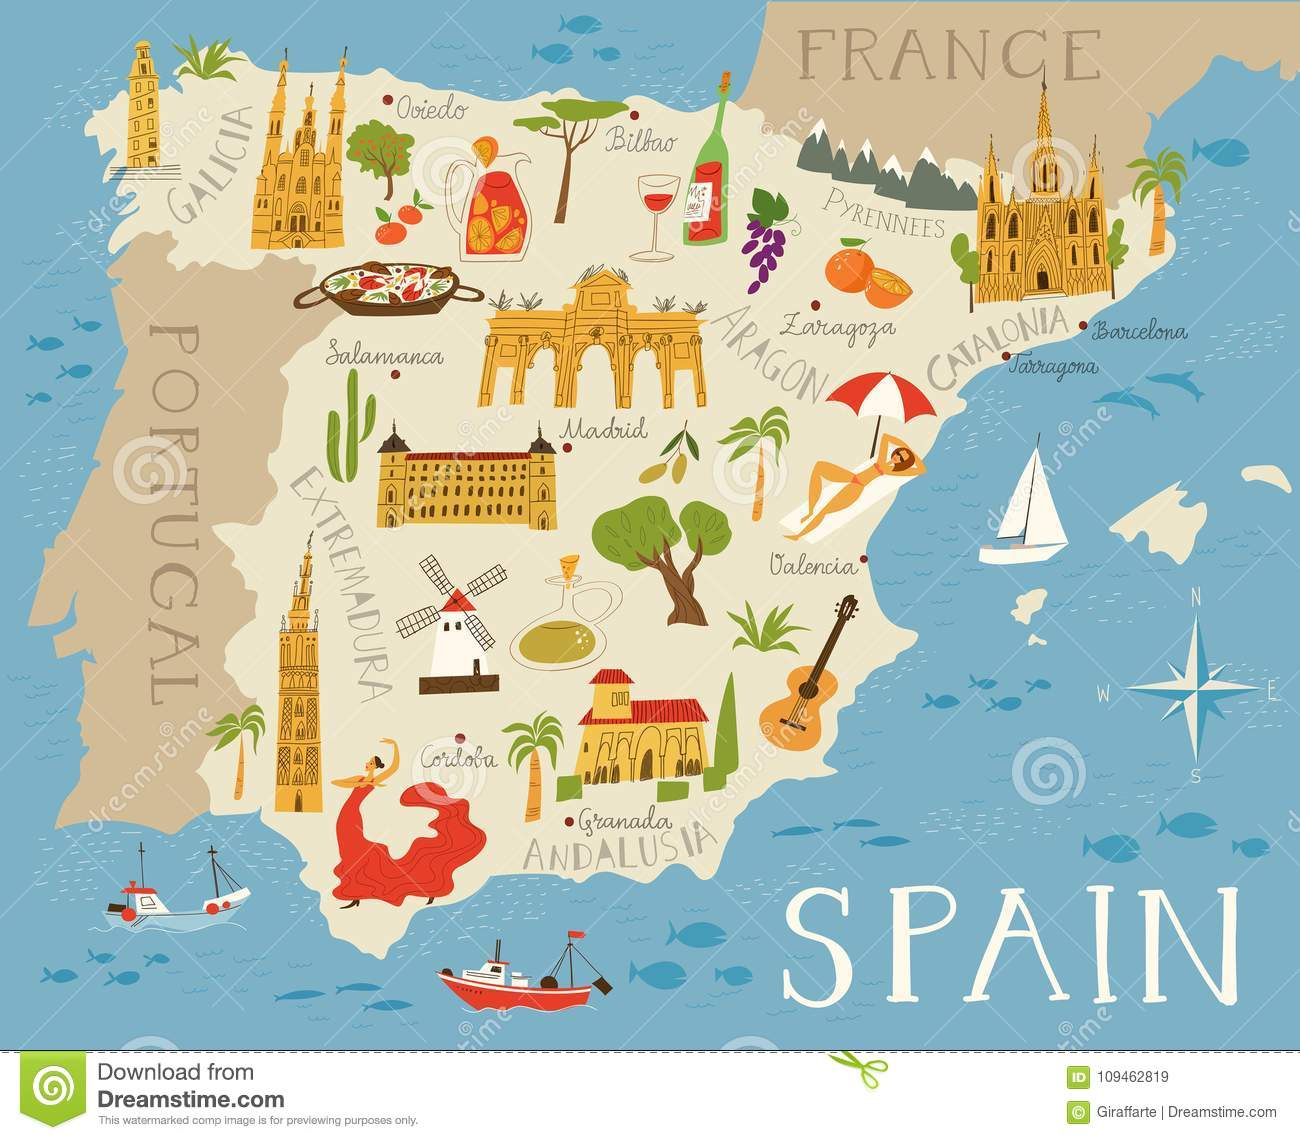 High detailed map of Spain stock vector. Illustration of ... on map of equatorial guinea in spanish, map of barcelona in spanish, map of paraguay in spanish, map of cities in espana, map of countries that speak spanish, map of the world in spanish, map of china in spanish, map of dominican republic in spanish, map of north america in spanish, map of spanish speaking countries, map of egypt in spanish, map of spanish speaking world, map of united states in spanish, map of austria in spanish, capital of venezuela in spanish, espana capital in spanish, map of trinidad in spanish, map of continents in spanish, map of puerto rico in spanish, map of england in 1500,